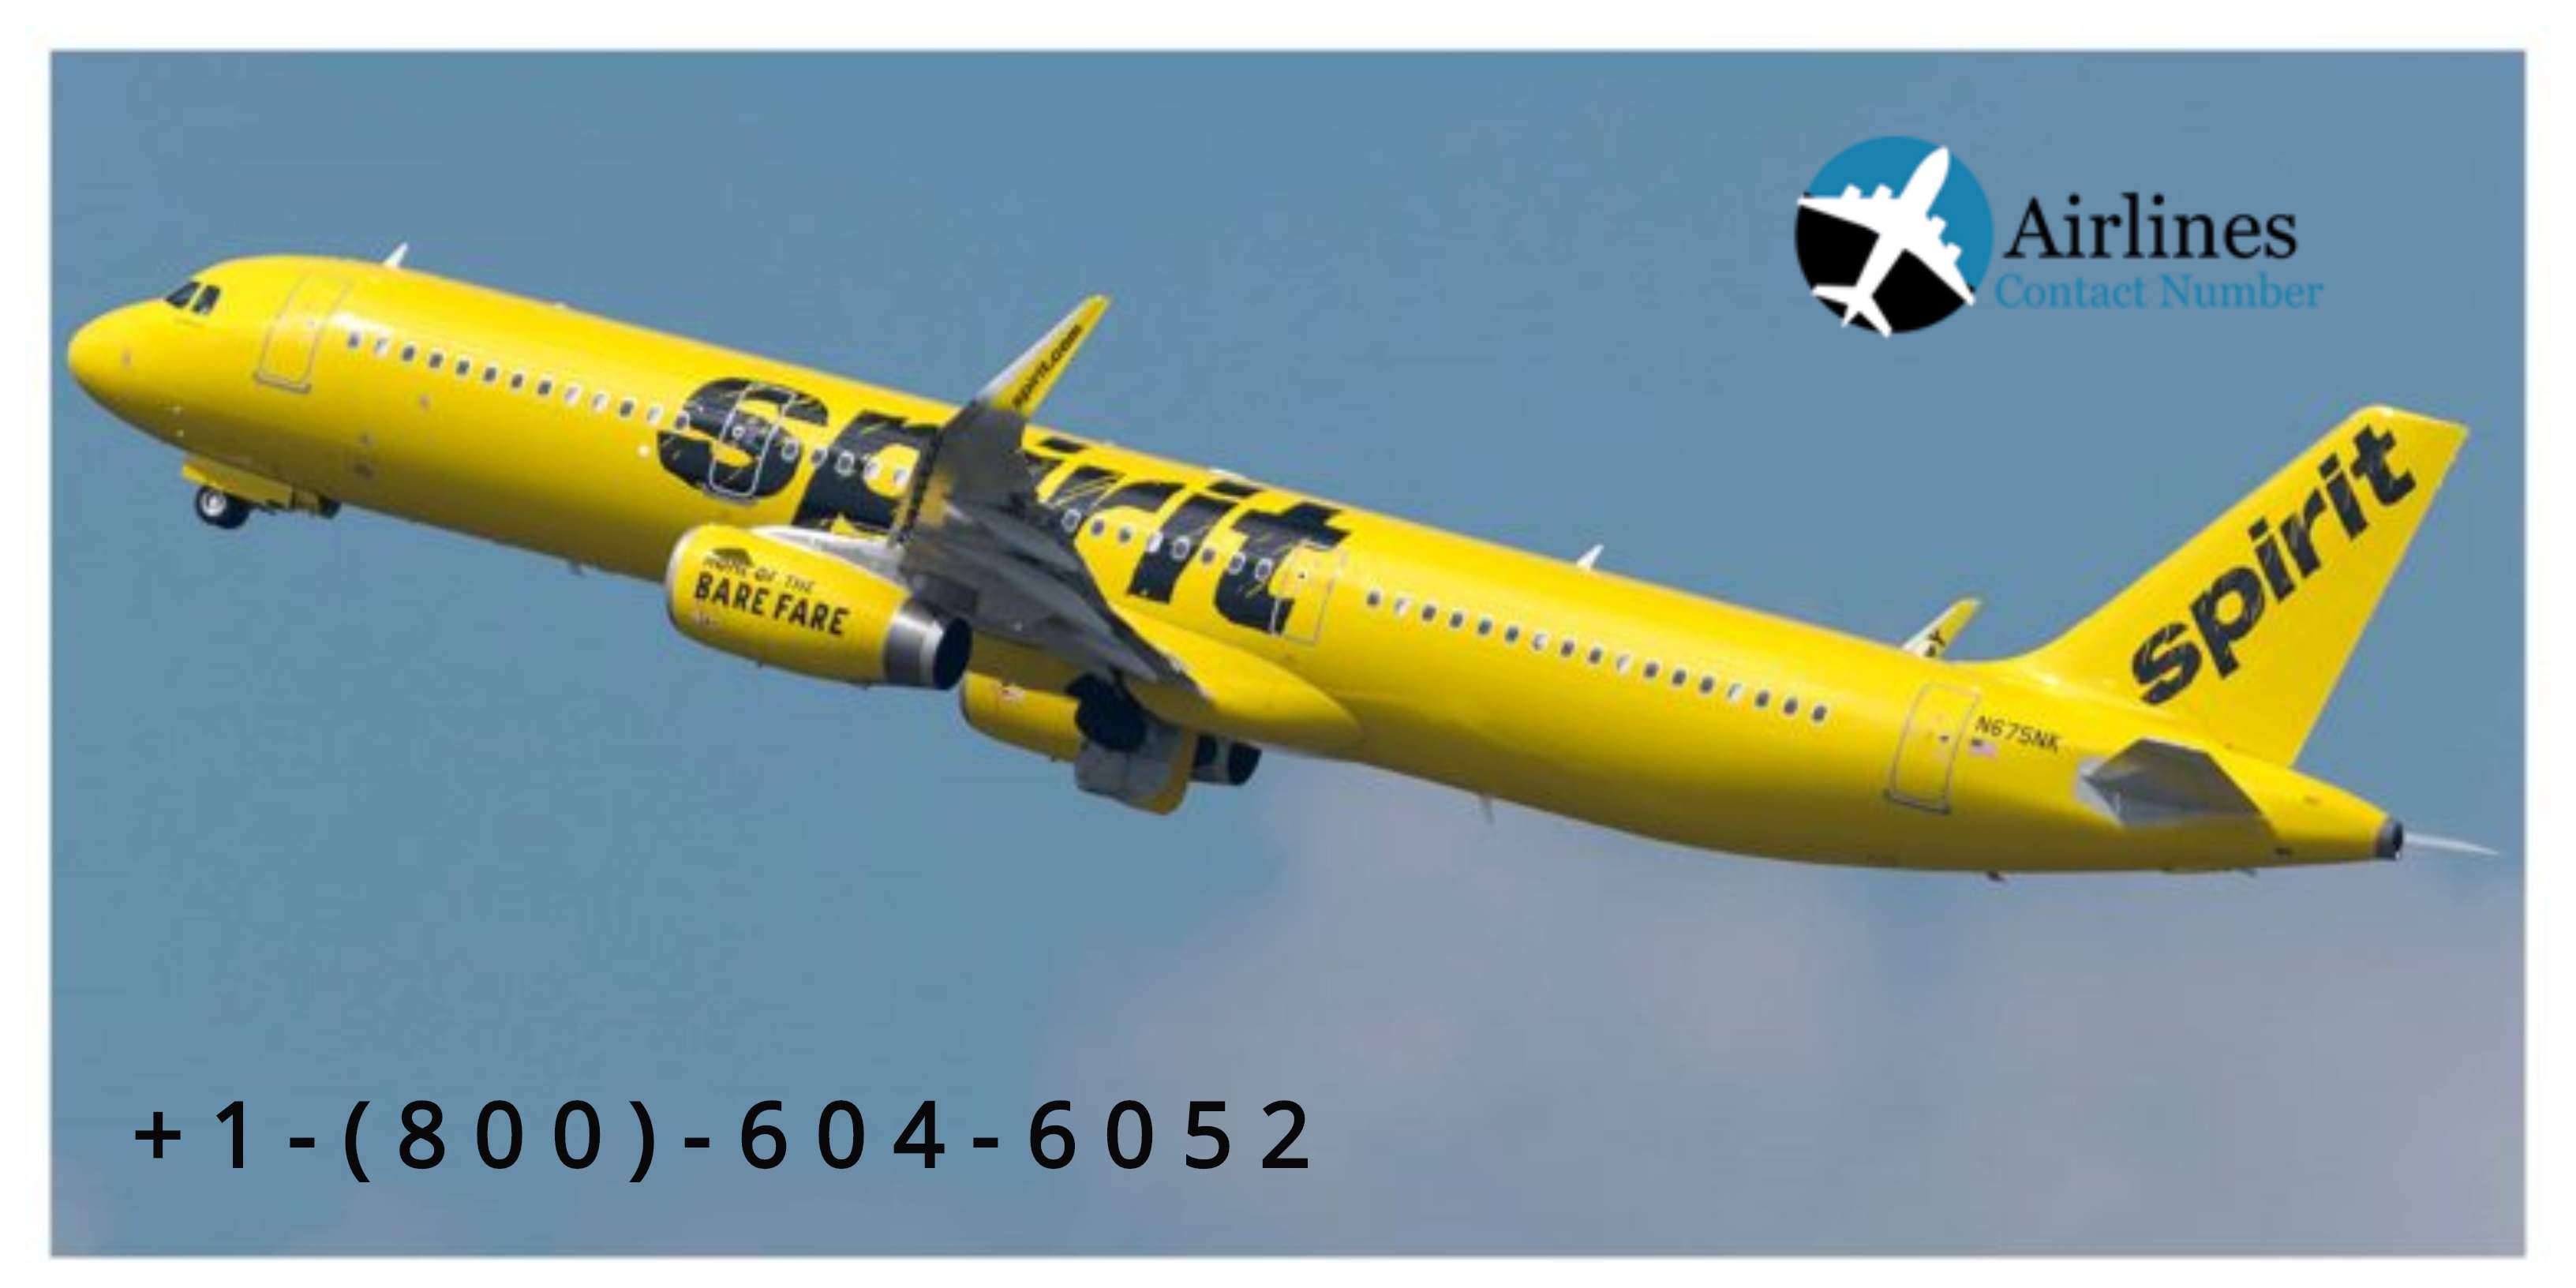 spirit airlines contact numberTour and TravelsTravel AgentsAll Indiaother